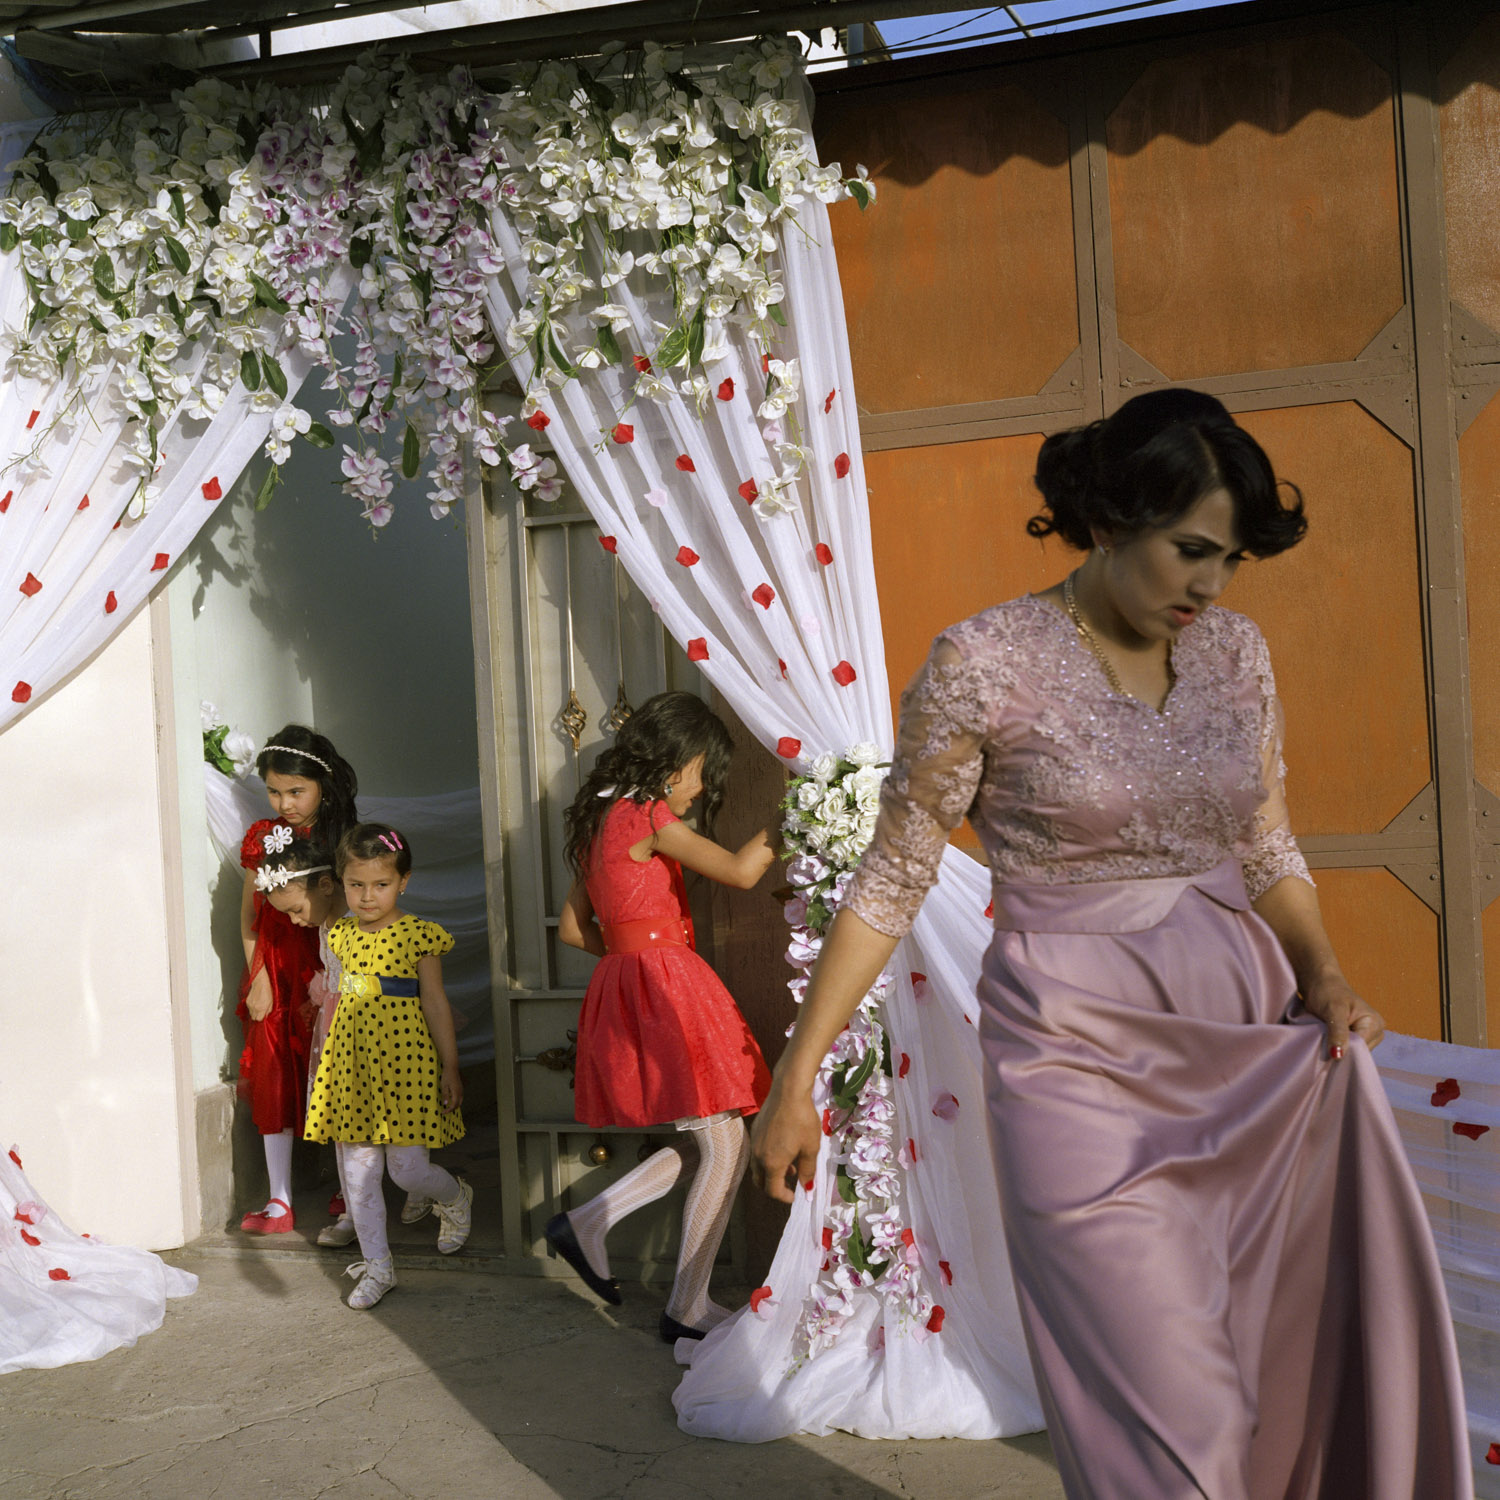 Uzbek Wedding preparations near a Korean cultural centre and a language school in the district of Mirabad in Tashkent, Uzbekistan, where many Korean descendants live. Tashkent, Uzbekistan. 2016.